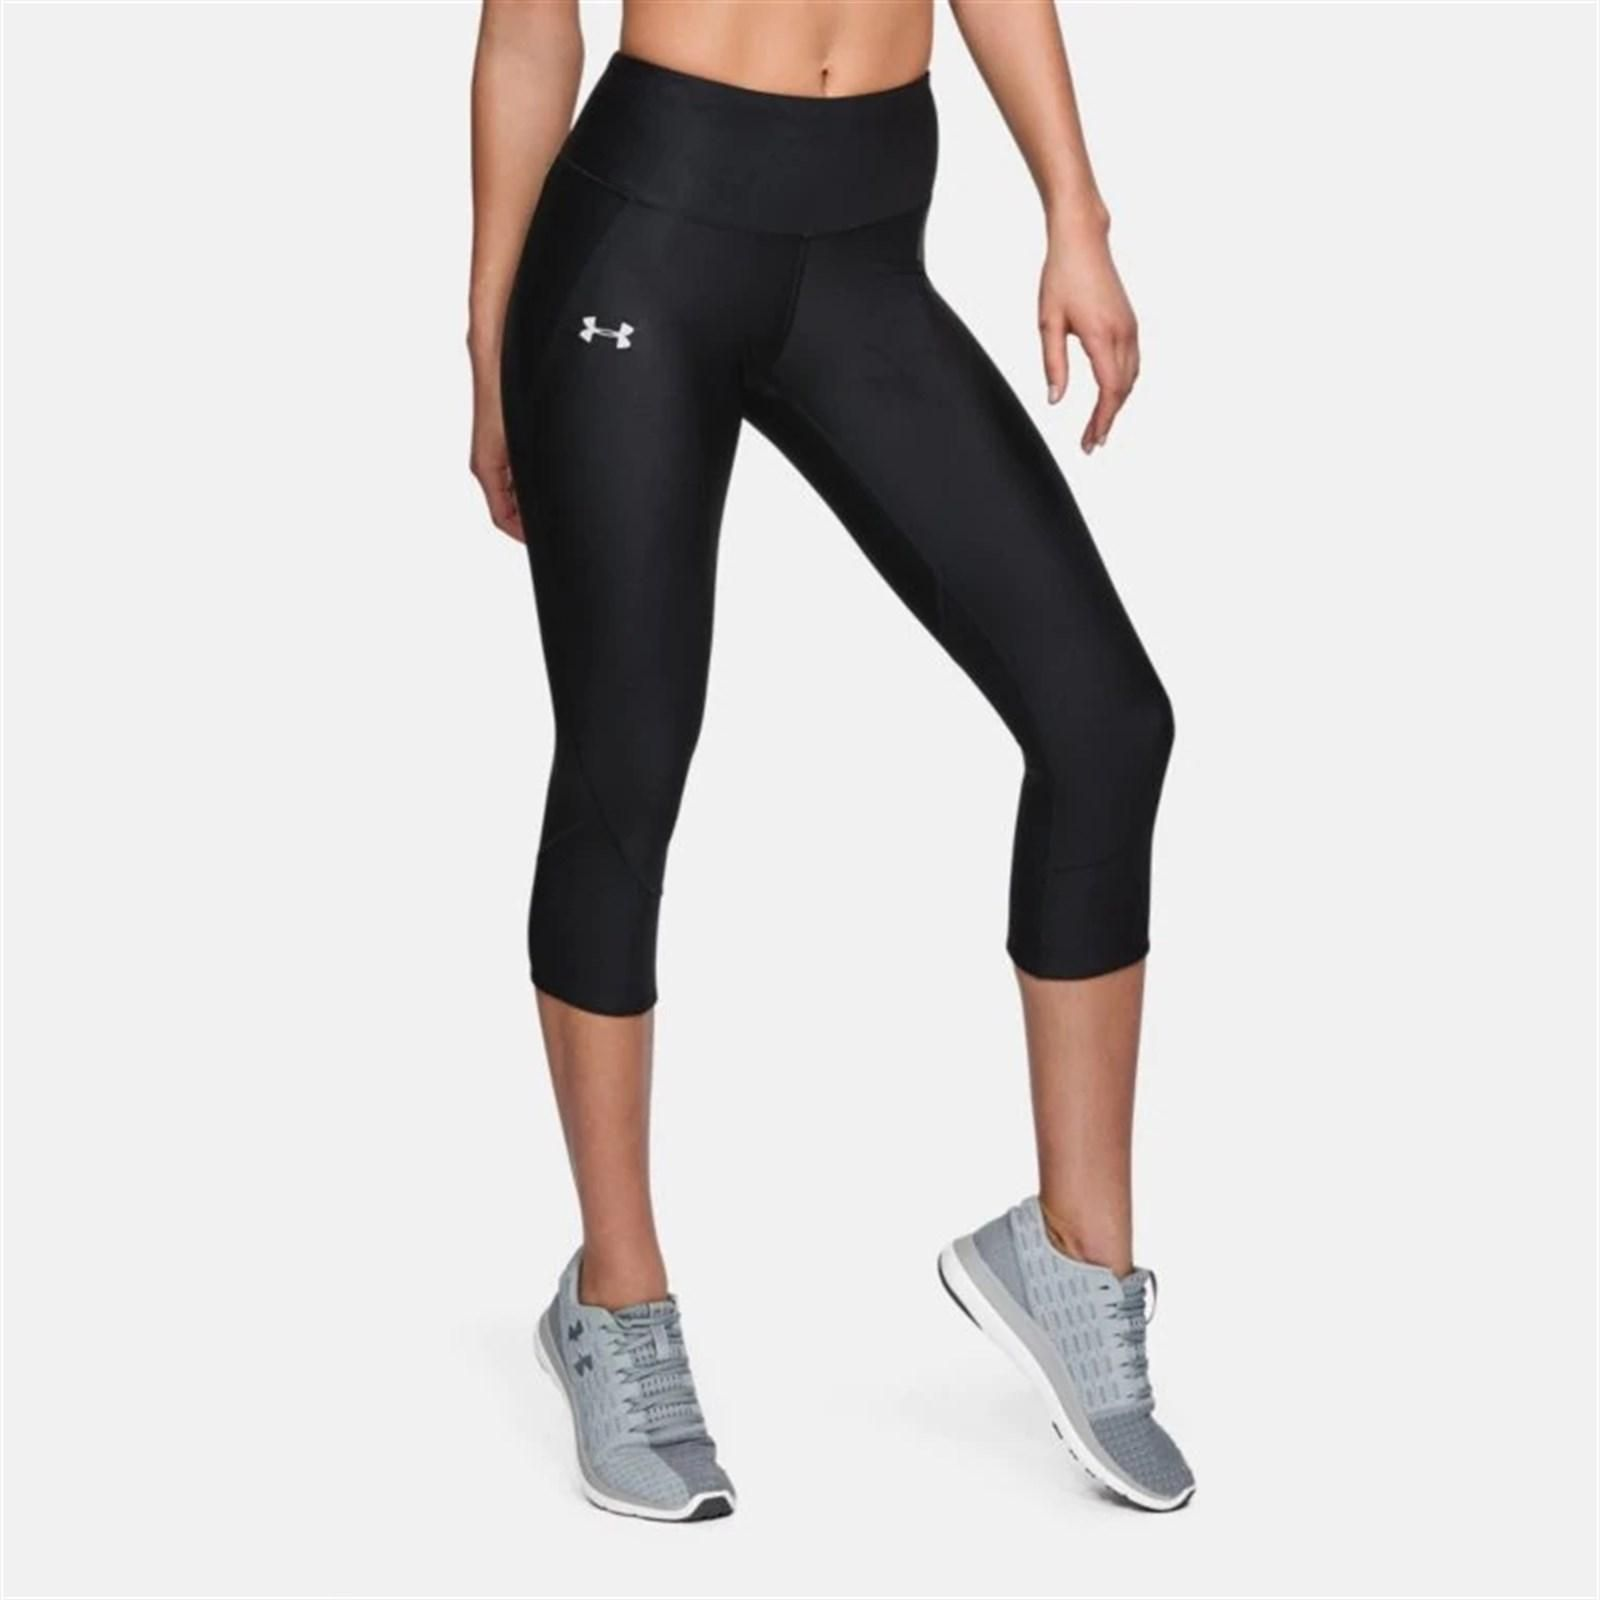 2019 Under Armour Ladies Fly Fast Crop Leggings UA Gym Training Sports Pants